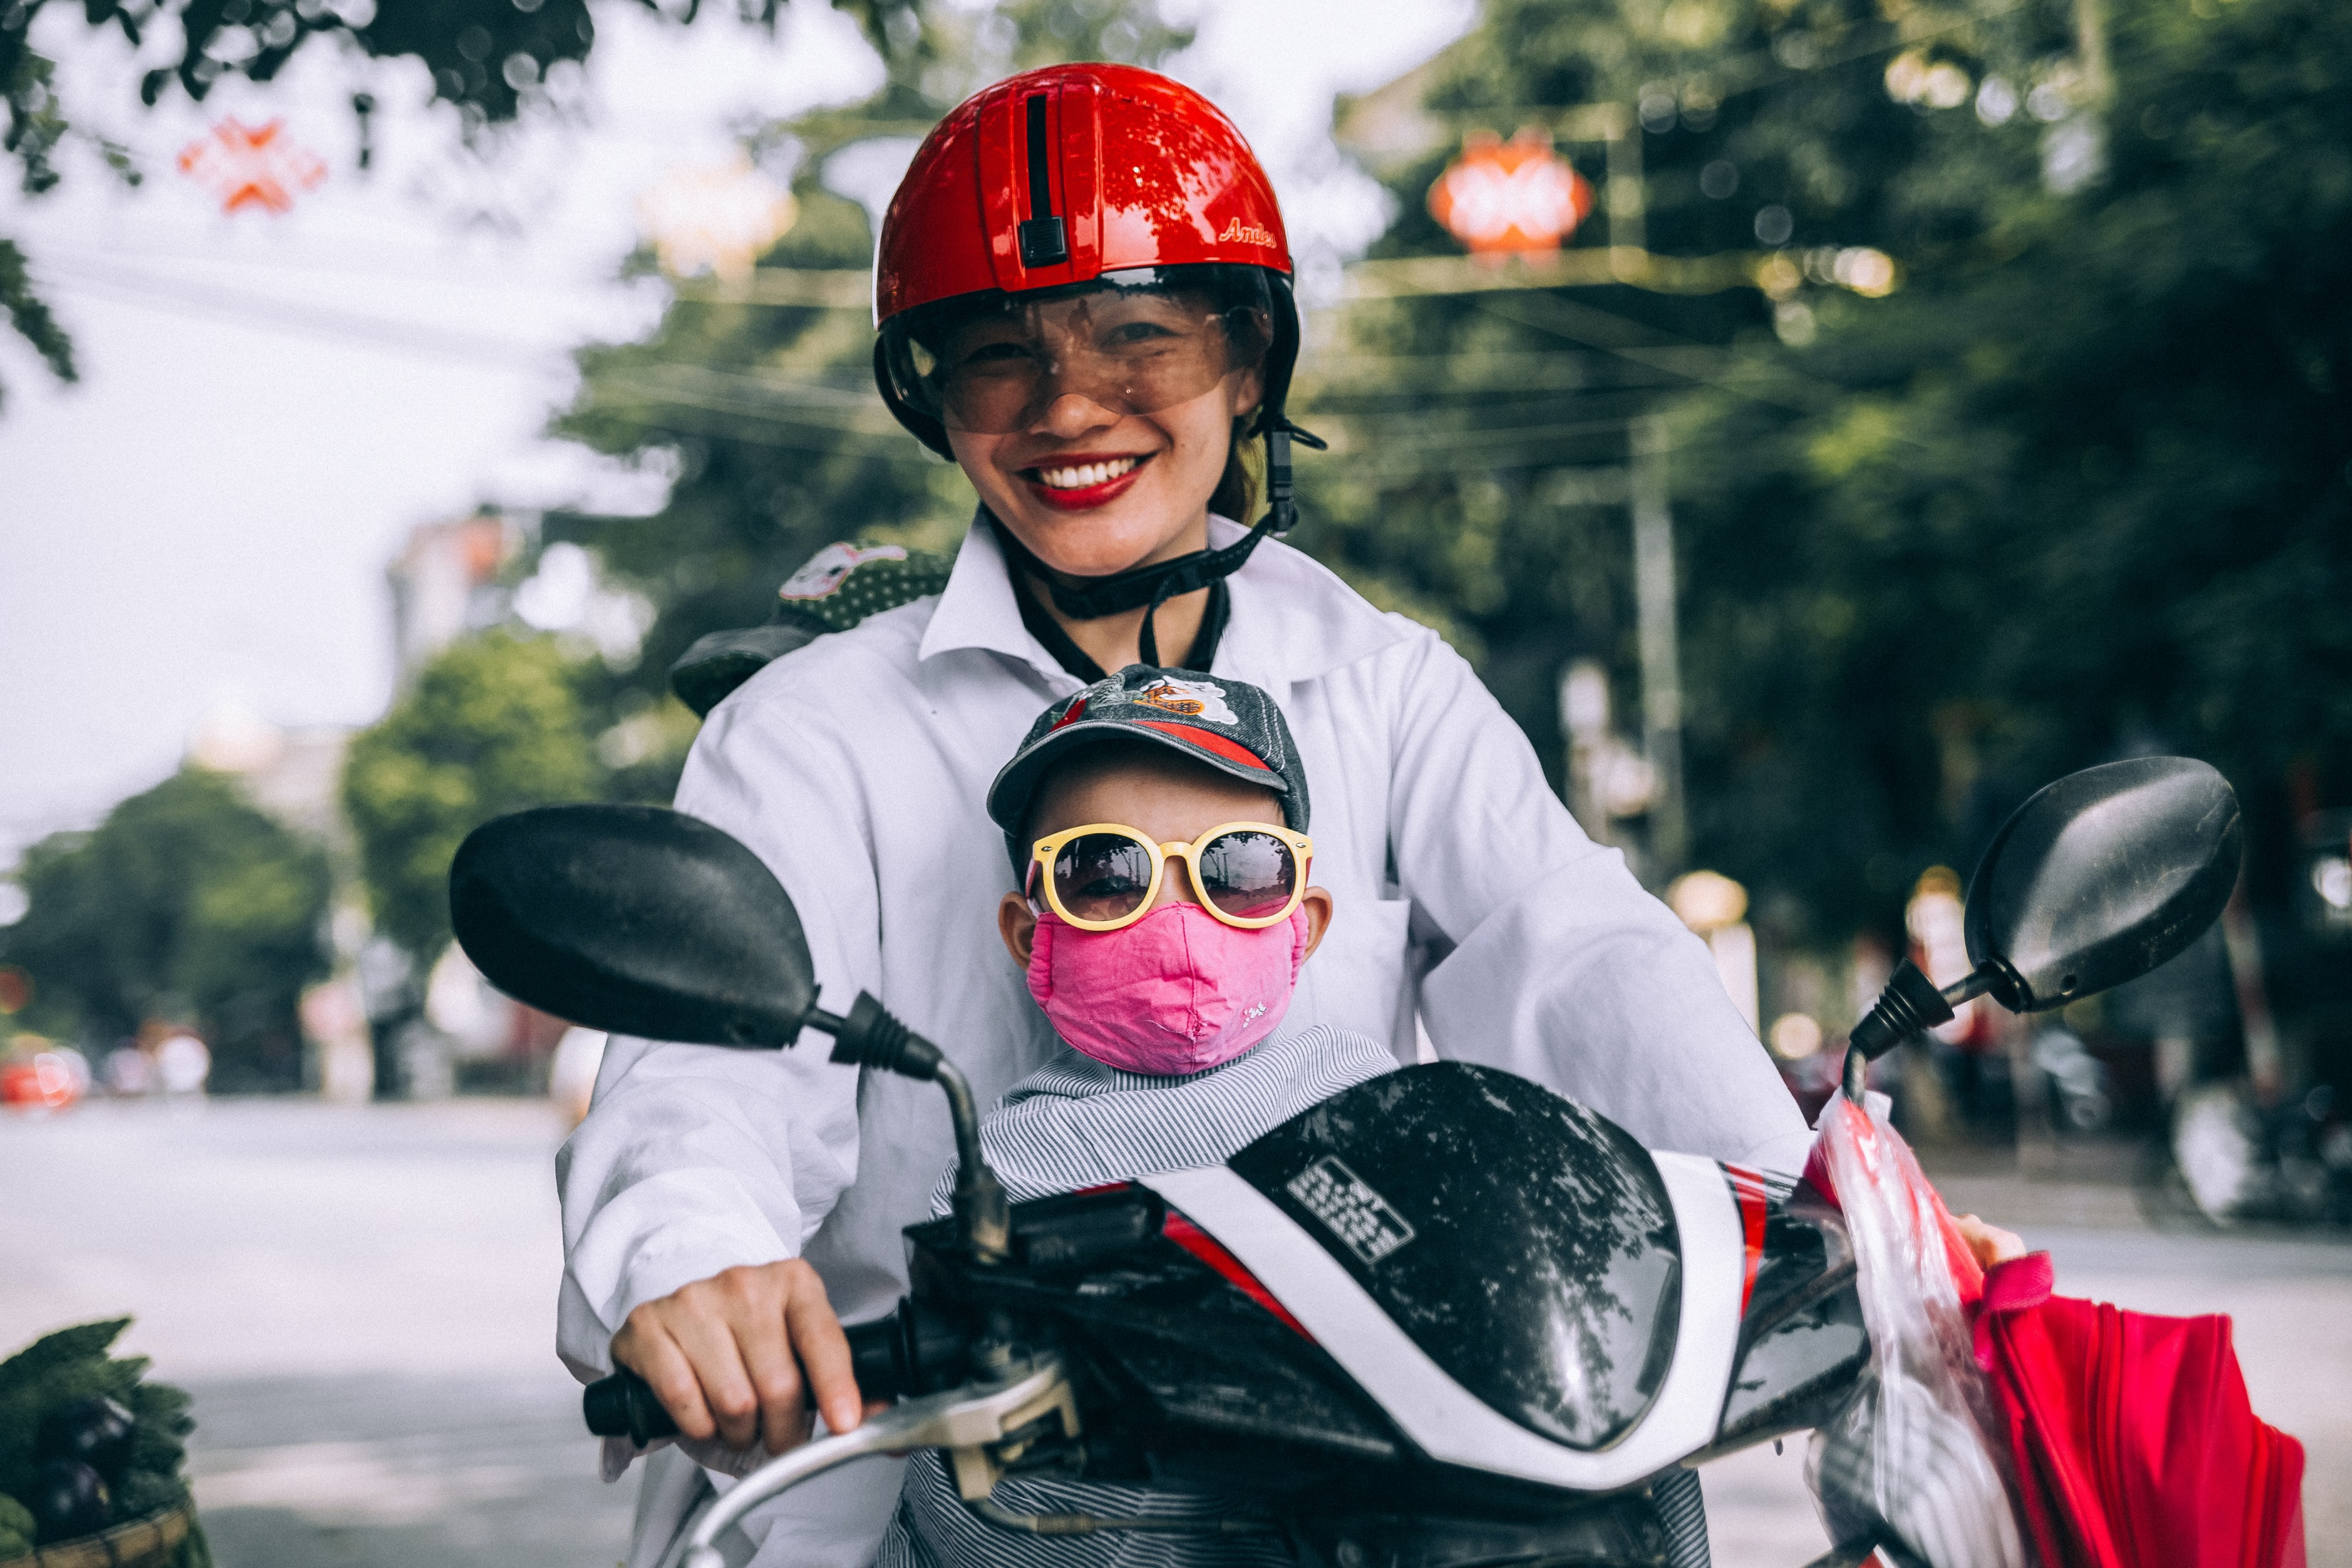 Riding a scooter together, mother wears a hat and child wears sunglasses, face mask and cap